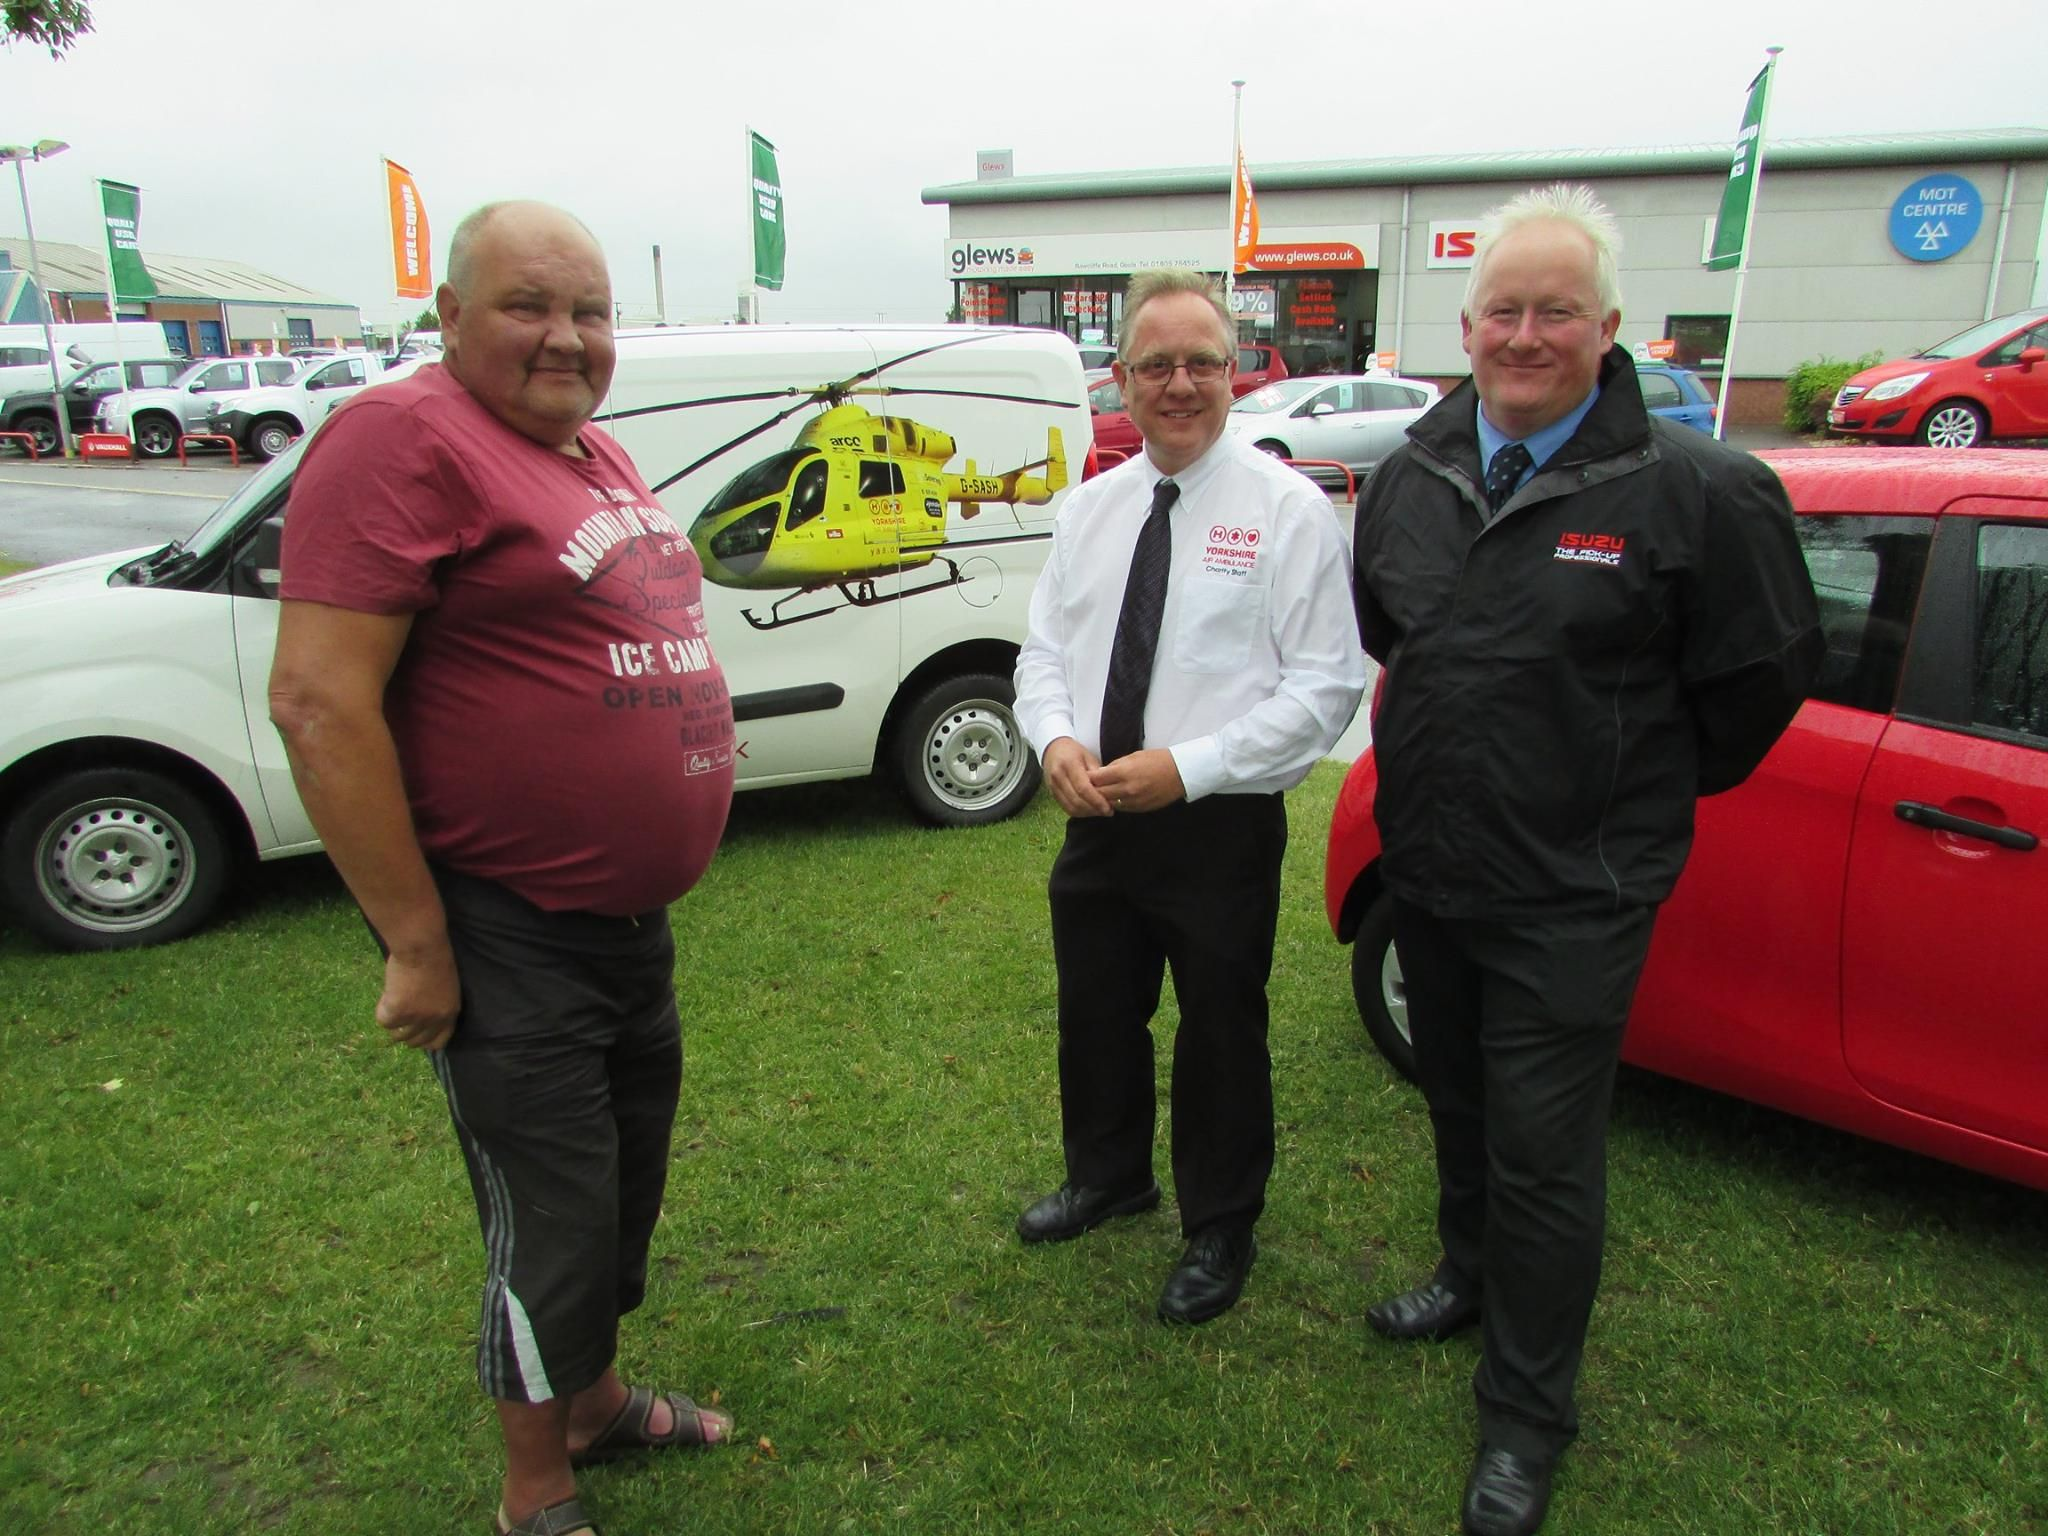 Goole resident wins Car for £1